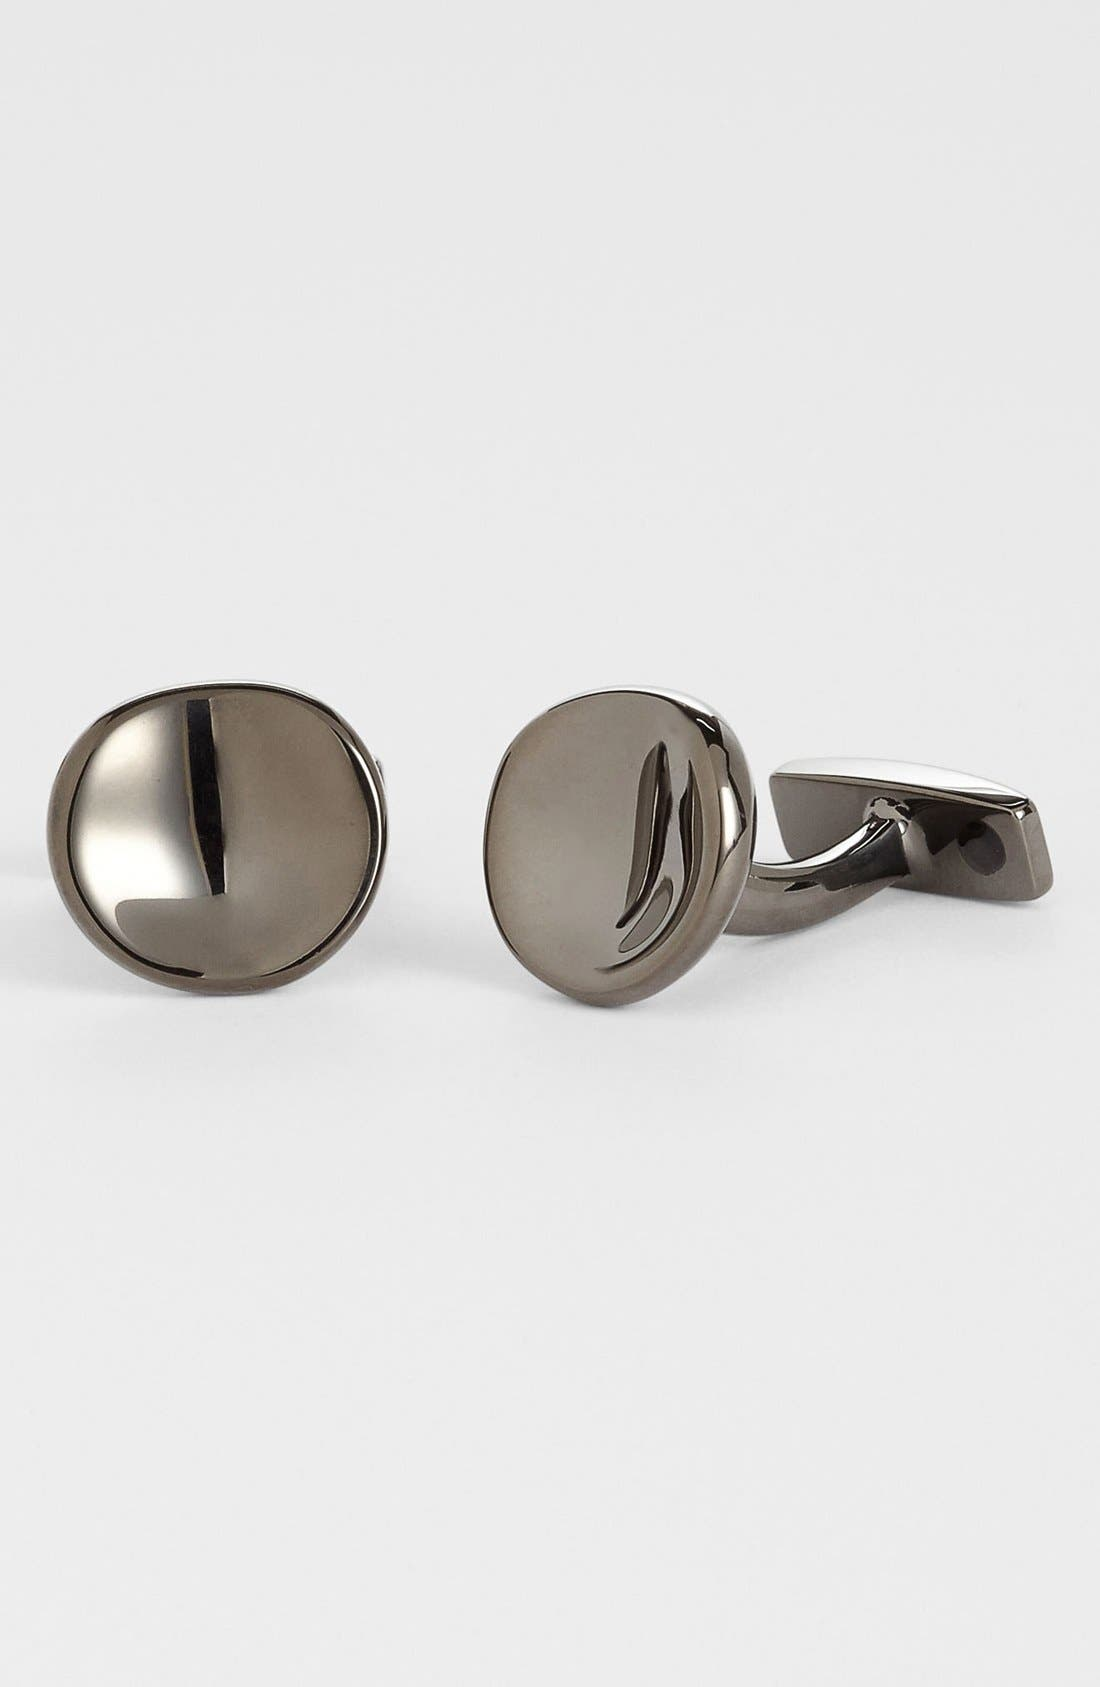 Main Image - BOSS HUGO BOSS 'Mio' Cuff Links